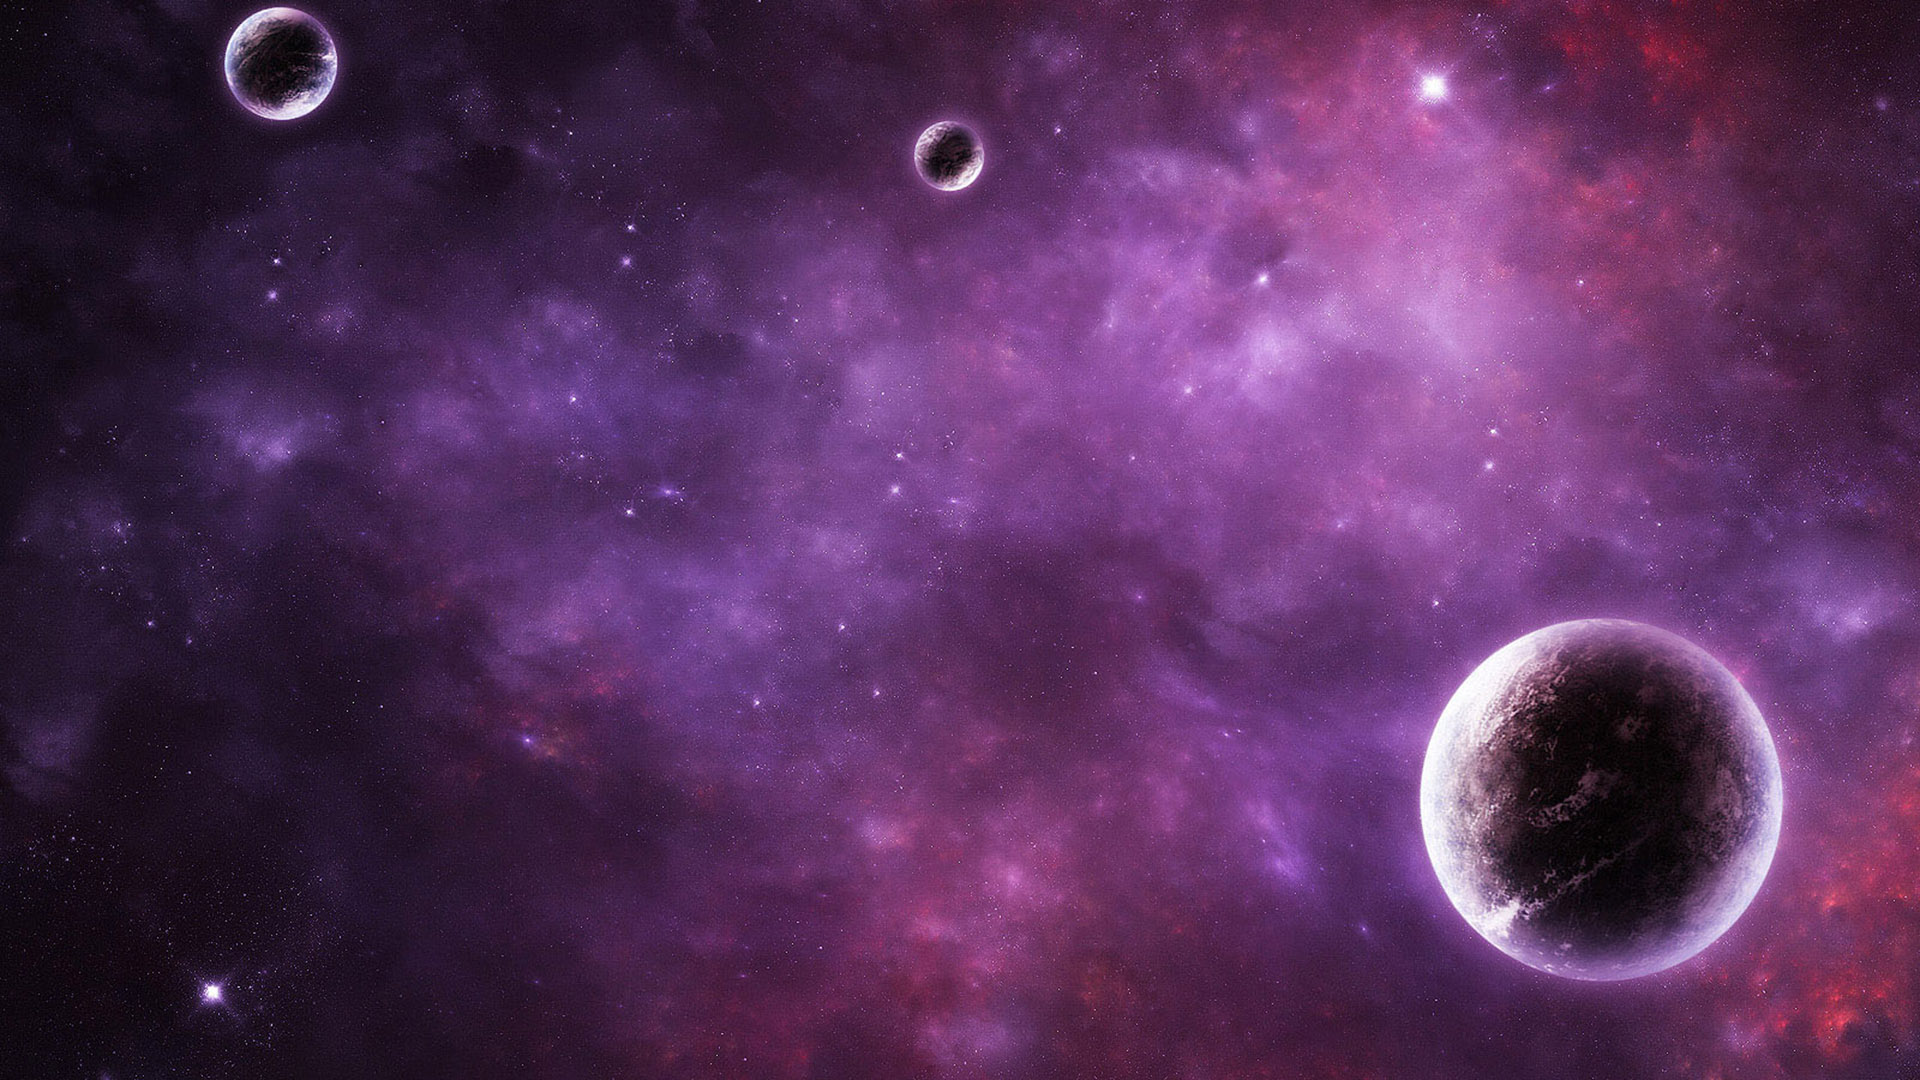 Outer space planets wallpaper HQ WALLPAPER   183612 1920x1080